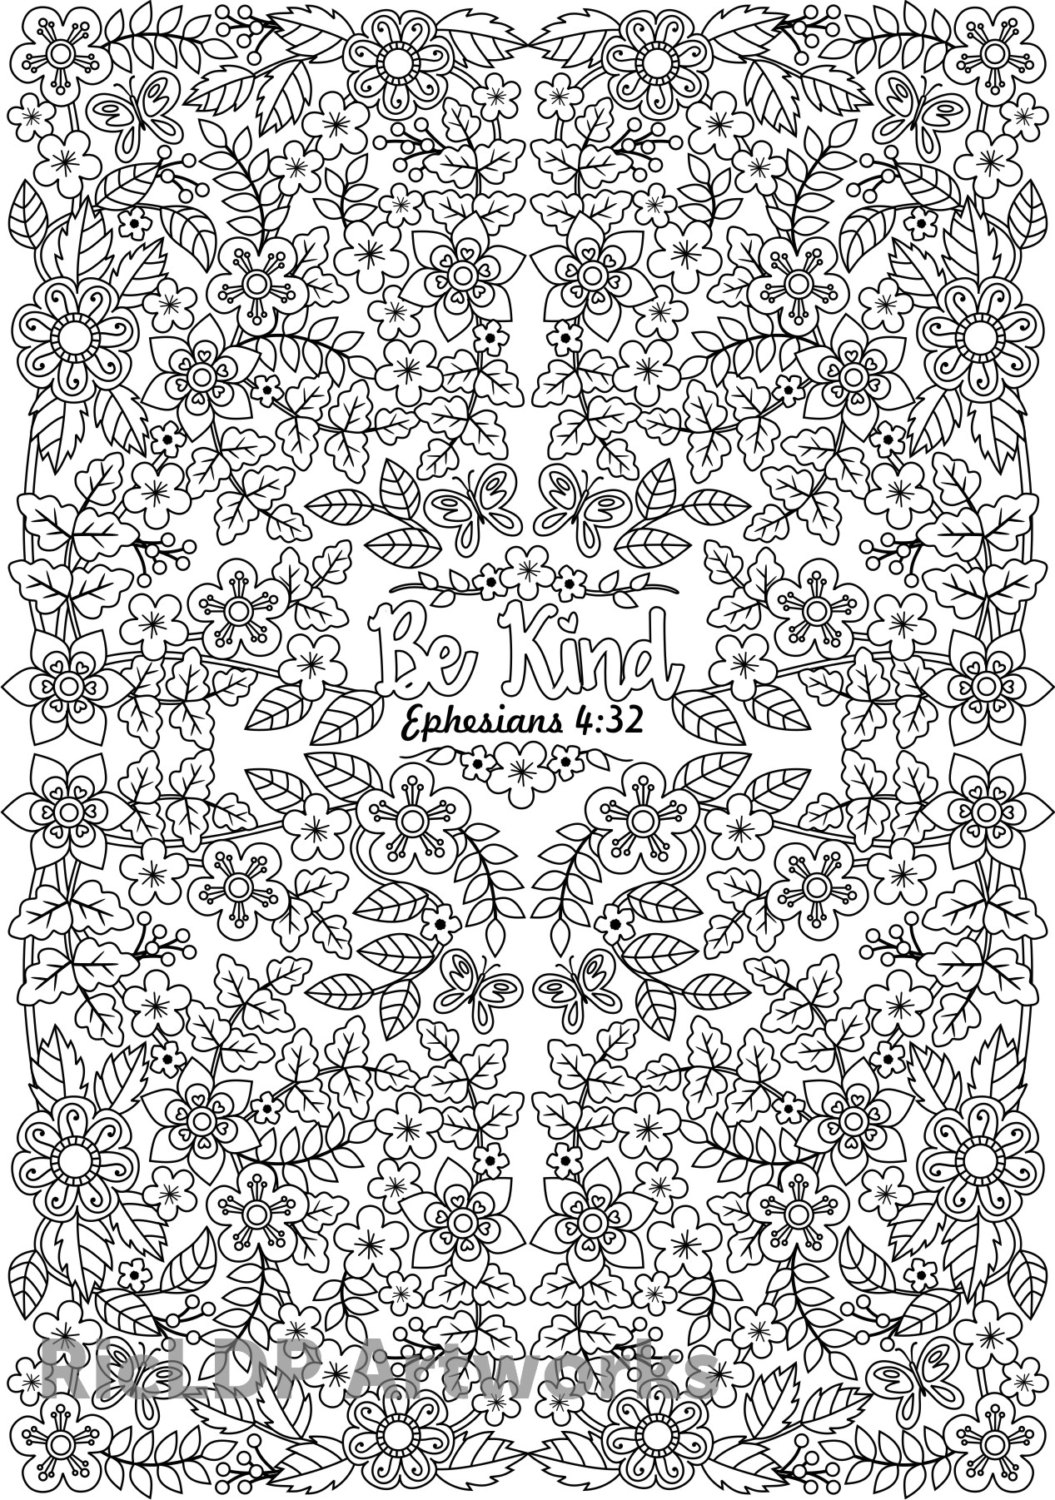 bible coloring pages for adults - three bible verse coloring pages for